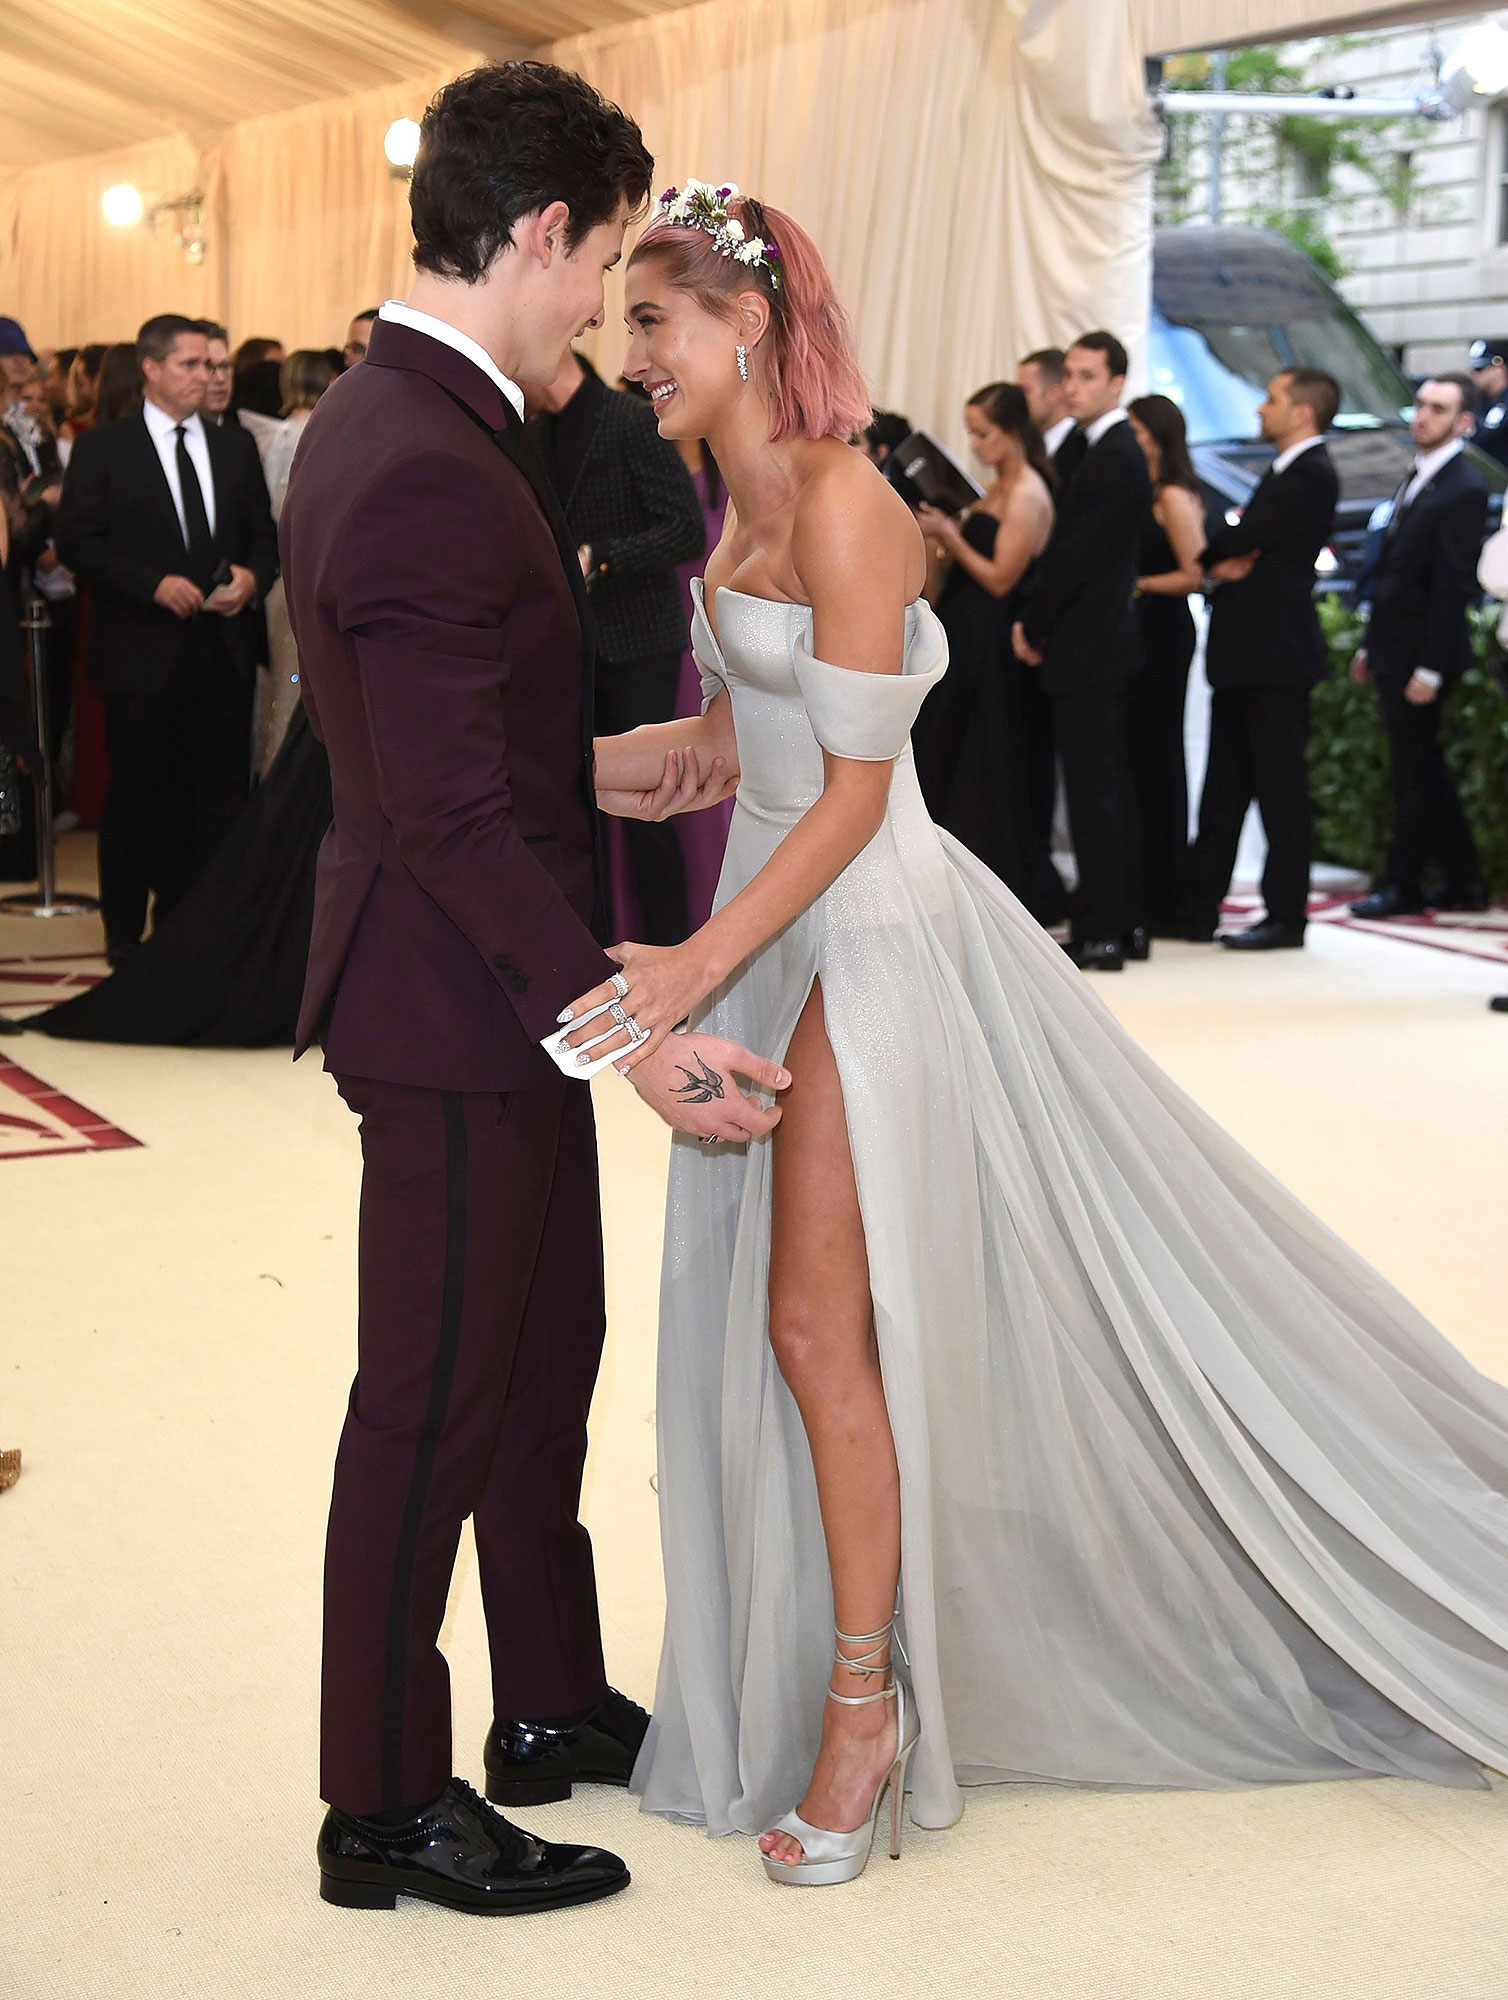 Mandatory Credit: Photo by Evan Agostini/Invision/AP/Shutterstock (9665012ek) Shawn Mendes, Hailey Rhode Baldwin. Shawn Mendes, left, and Hailey Baldwin attend The Metropolitan Museum of Art's Costume Institute benefit gala celebrating the opening of the Heavenly Bodies: Fashion and the Catholic Imagination exhibition, in New York 2018 MET Museum Costume Institute Benefit Gala, New York, USA - 07 May 2018